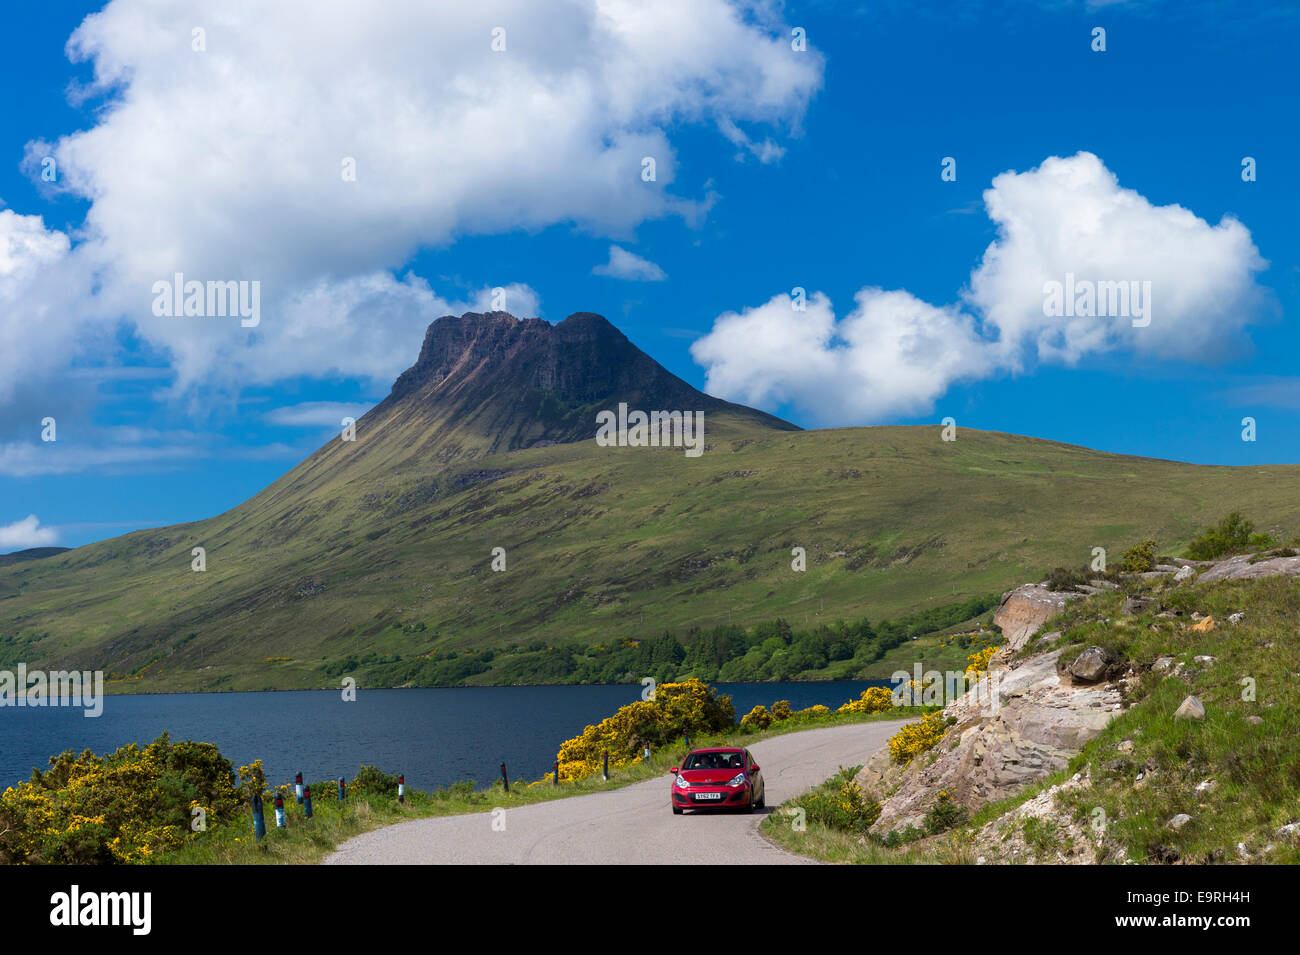 Motorist on touring holiday passes Stac Pollaidh, Stack Polly, mountain, within Inverpolly National Nature Reserve - Stock Image